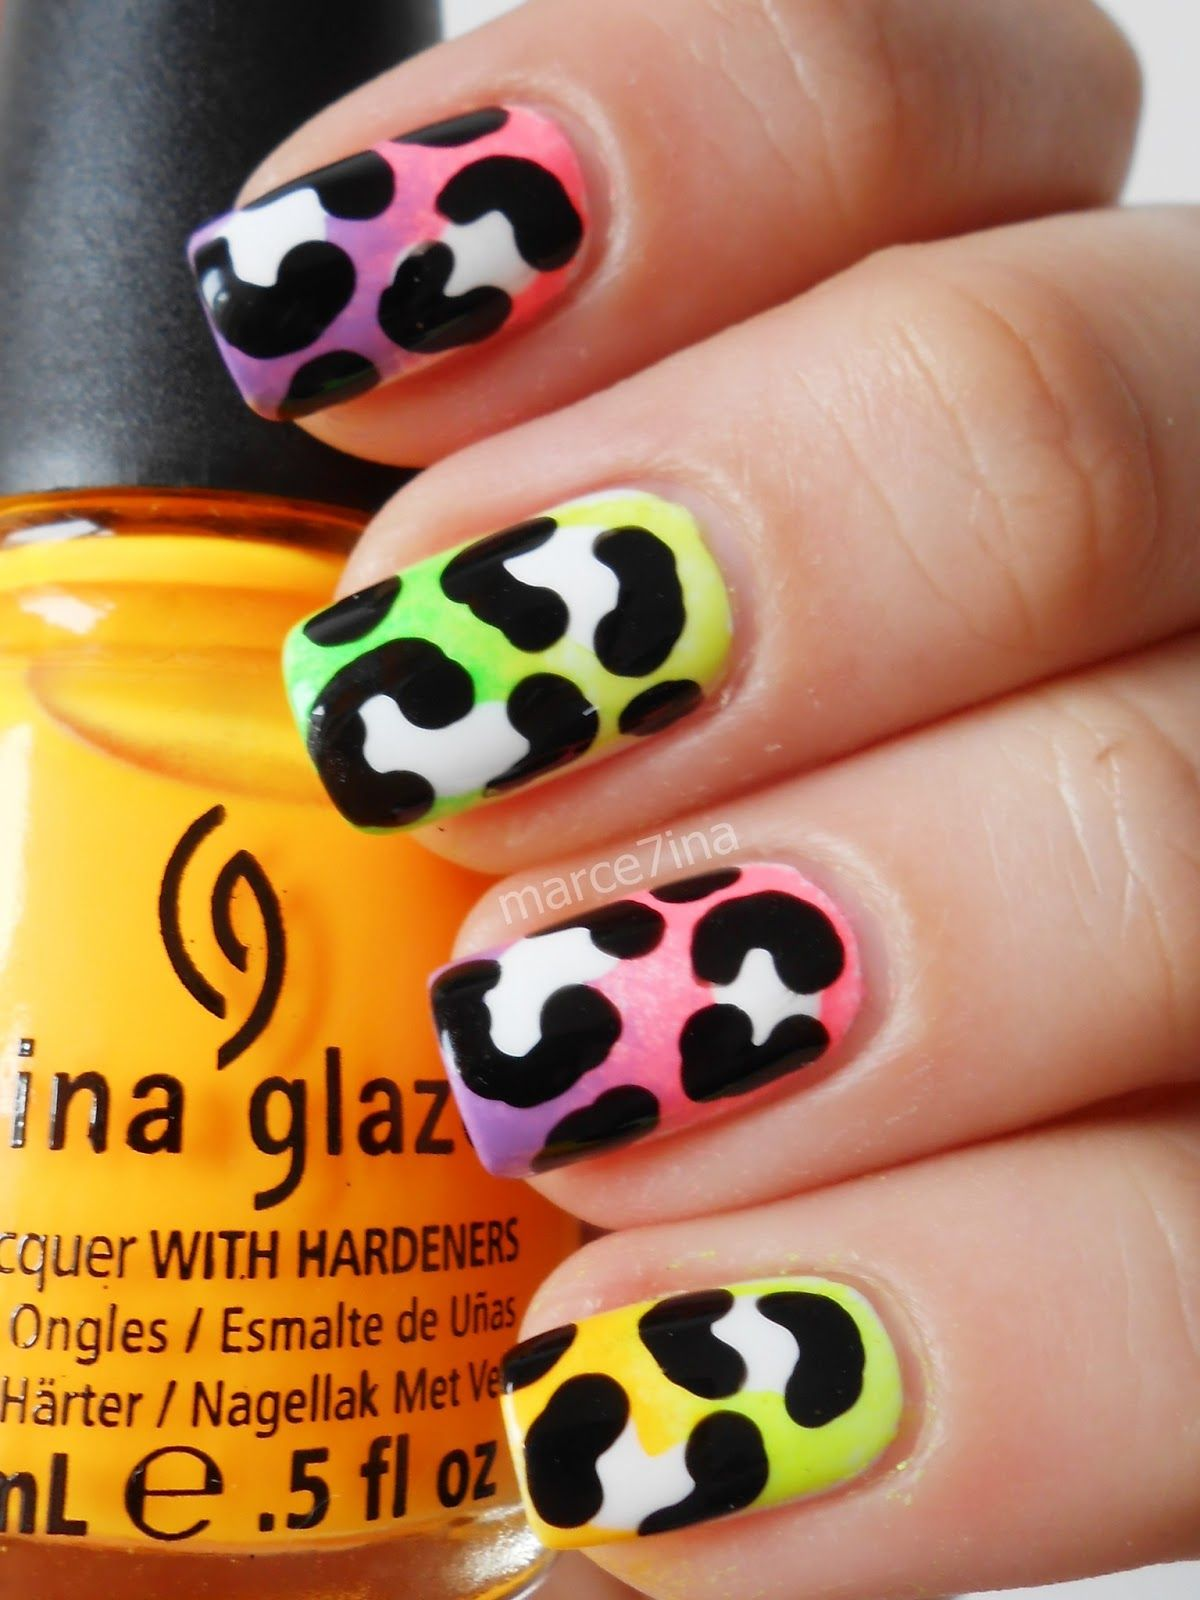 I really need to learn how to do this! This matches my bikini ...